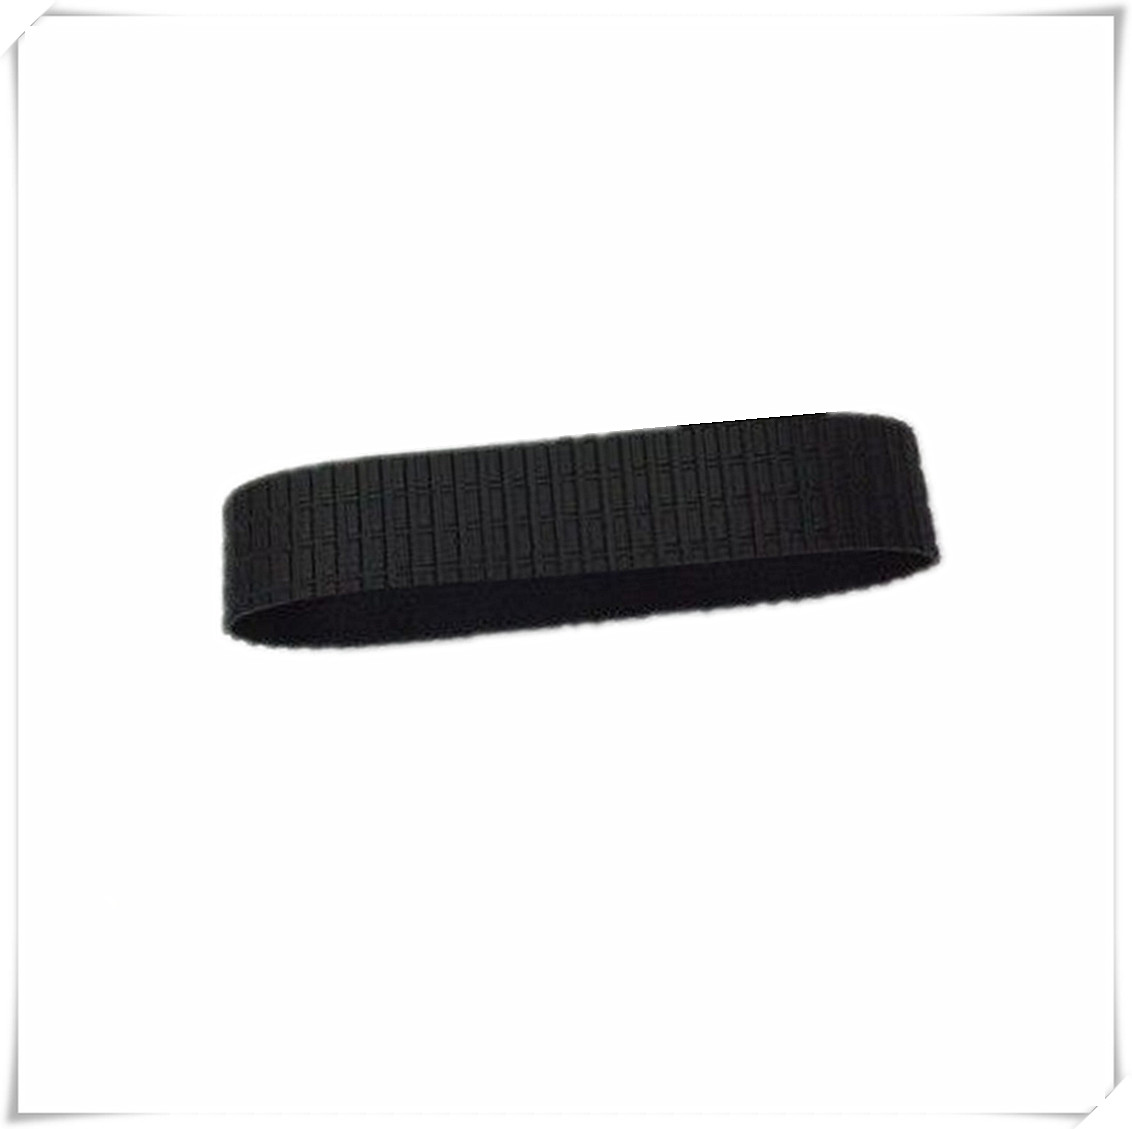 super Quality <font><b>Lens</b></font> Zoom Rubber Ring Rubber Grip Rubber For Nikon 28-70MM 28-70 <font><b>MM</b></font> f/<font><b>2.8</b></font> ED-IF AF-S Repair Part image